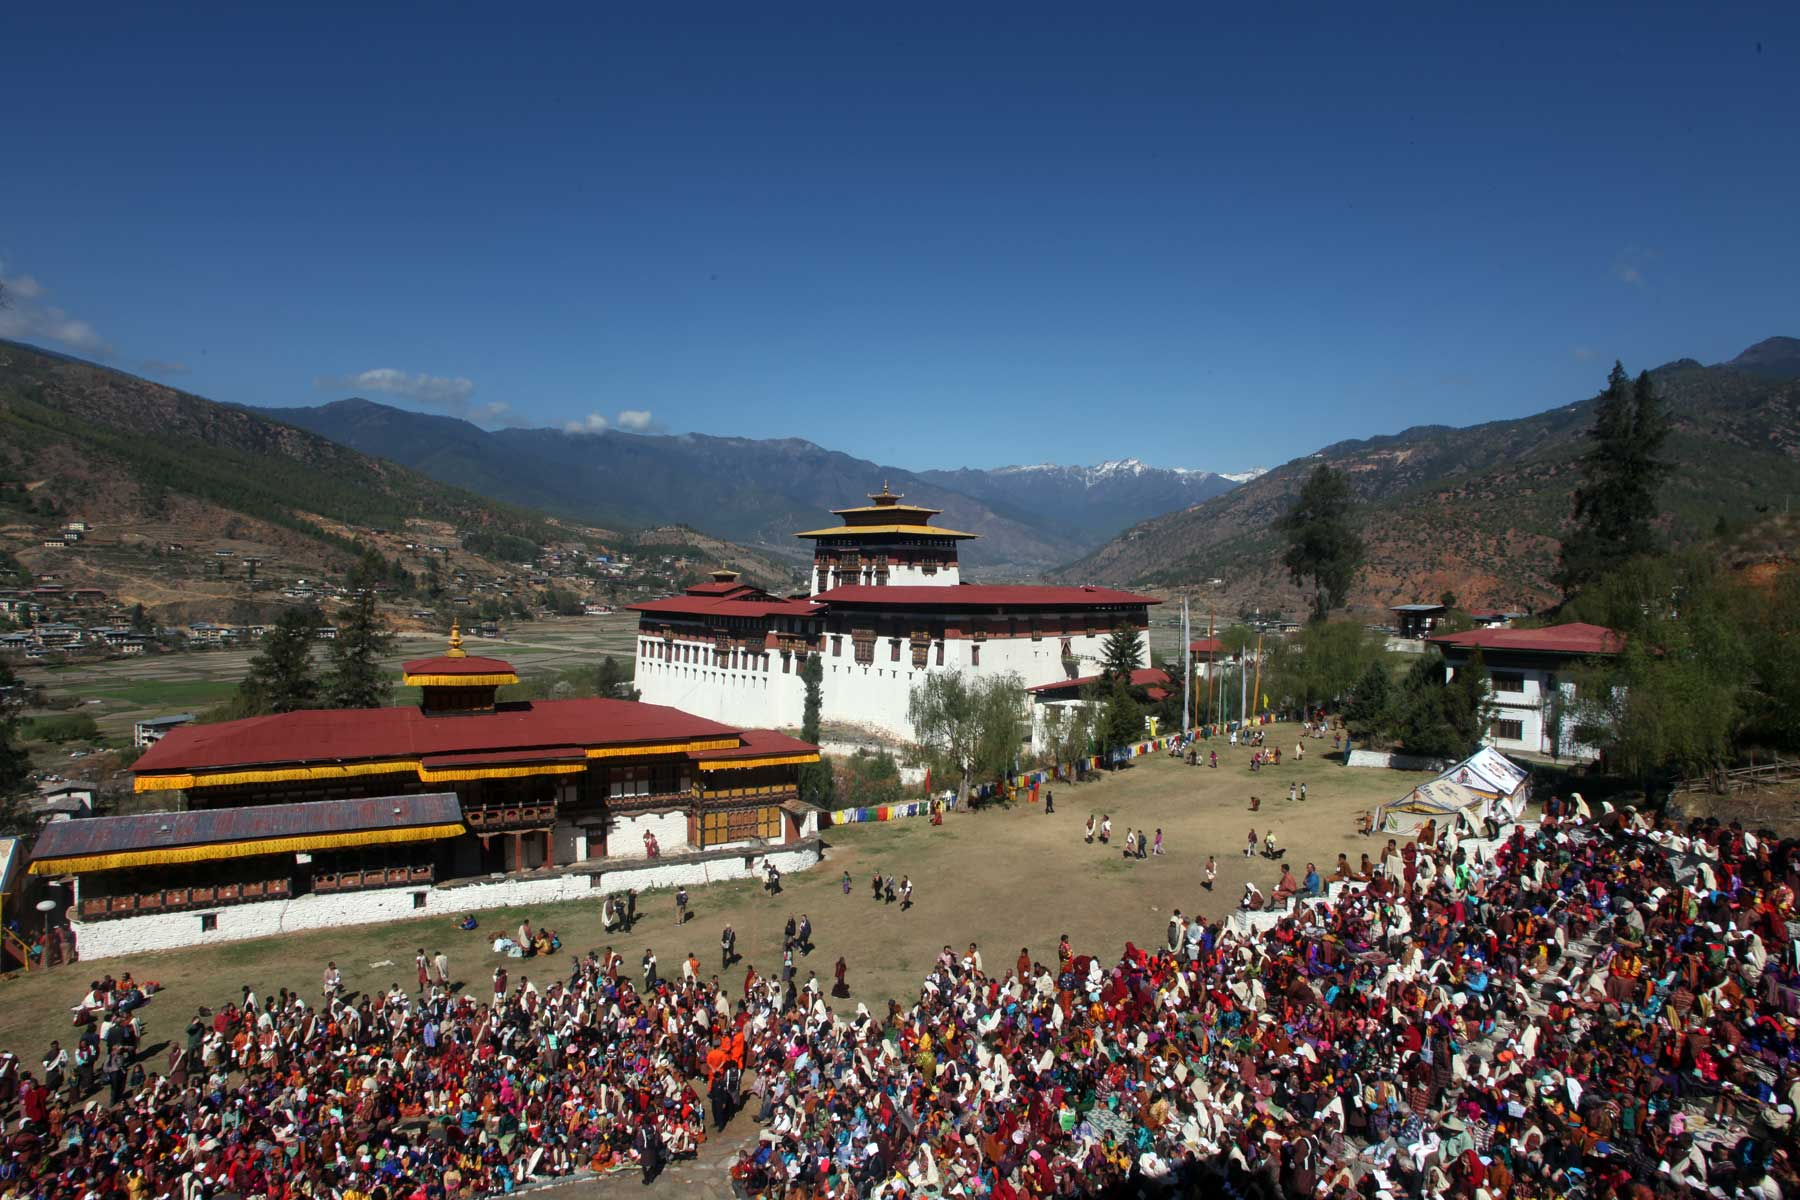 Photo of Paro Tshechu, annual festival held in Paro valley, Bhutan